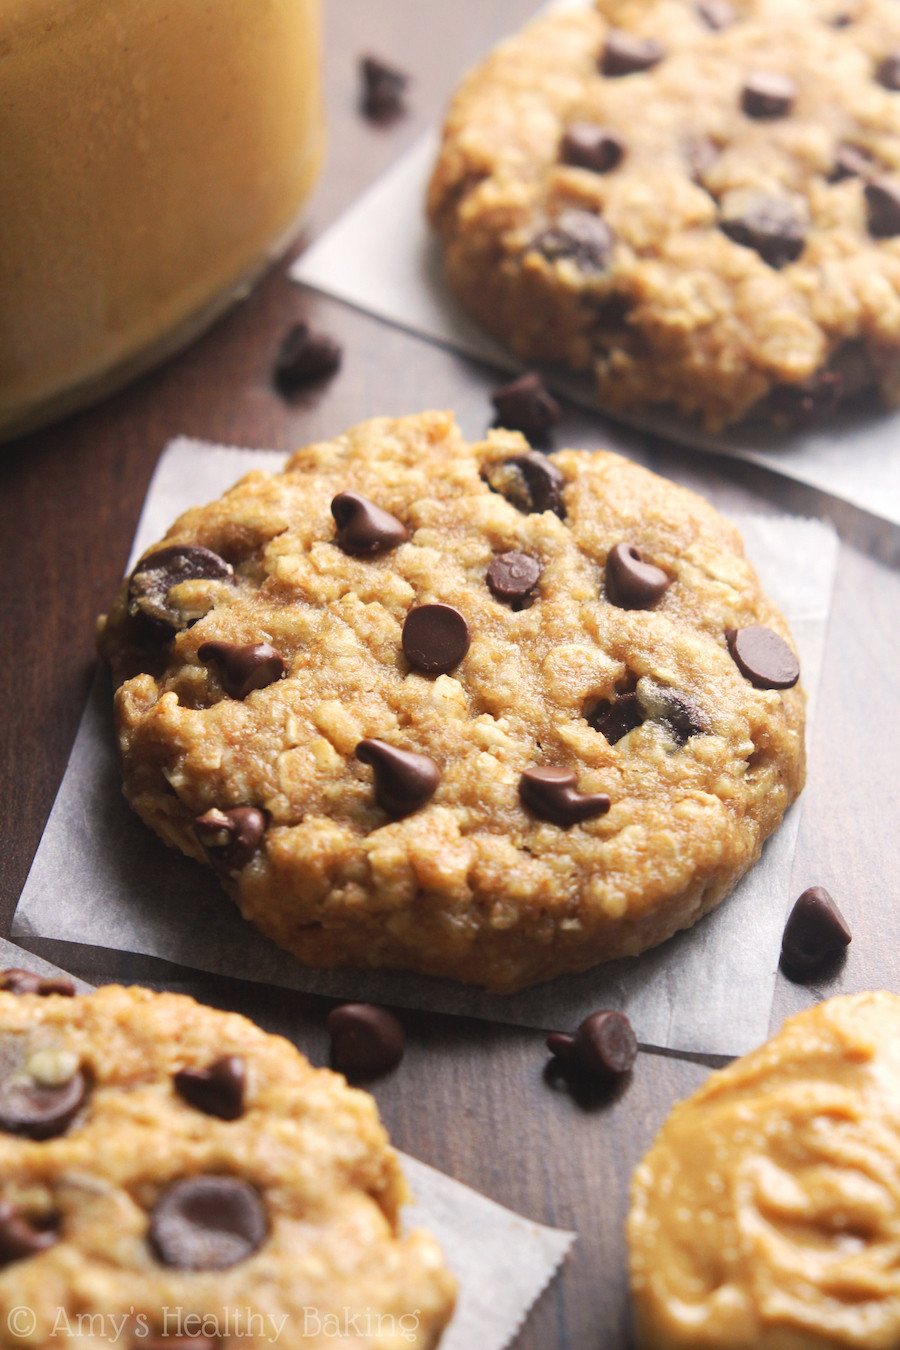 Chocolate Chip Cookies Recipe Healthy  Chocolate Chip Peanut Butter Oatmeal Cookies Recipe Video